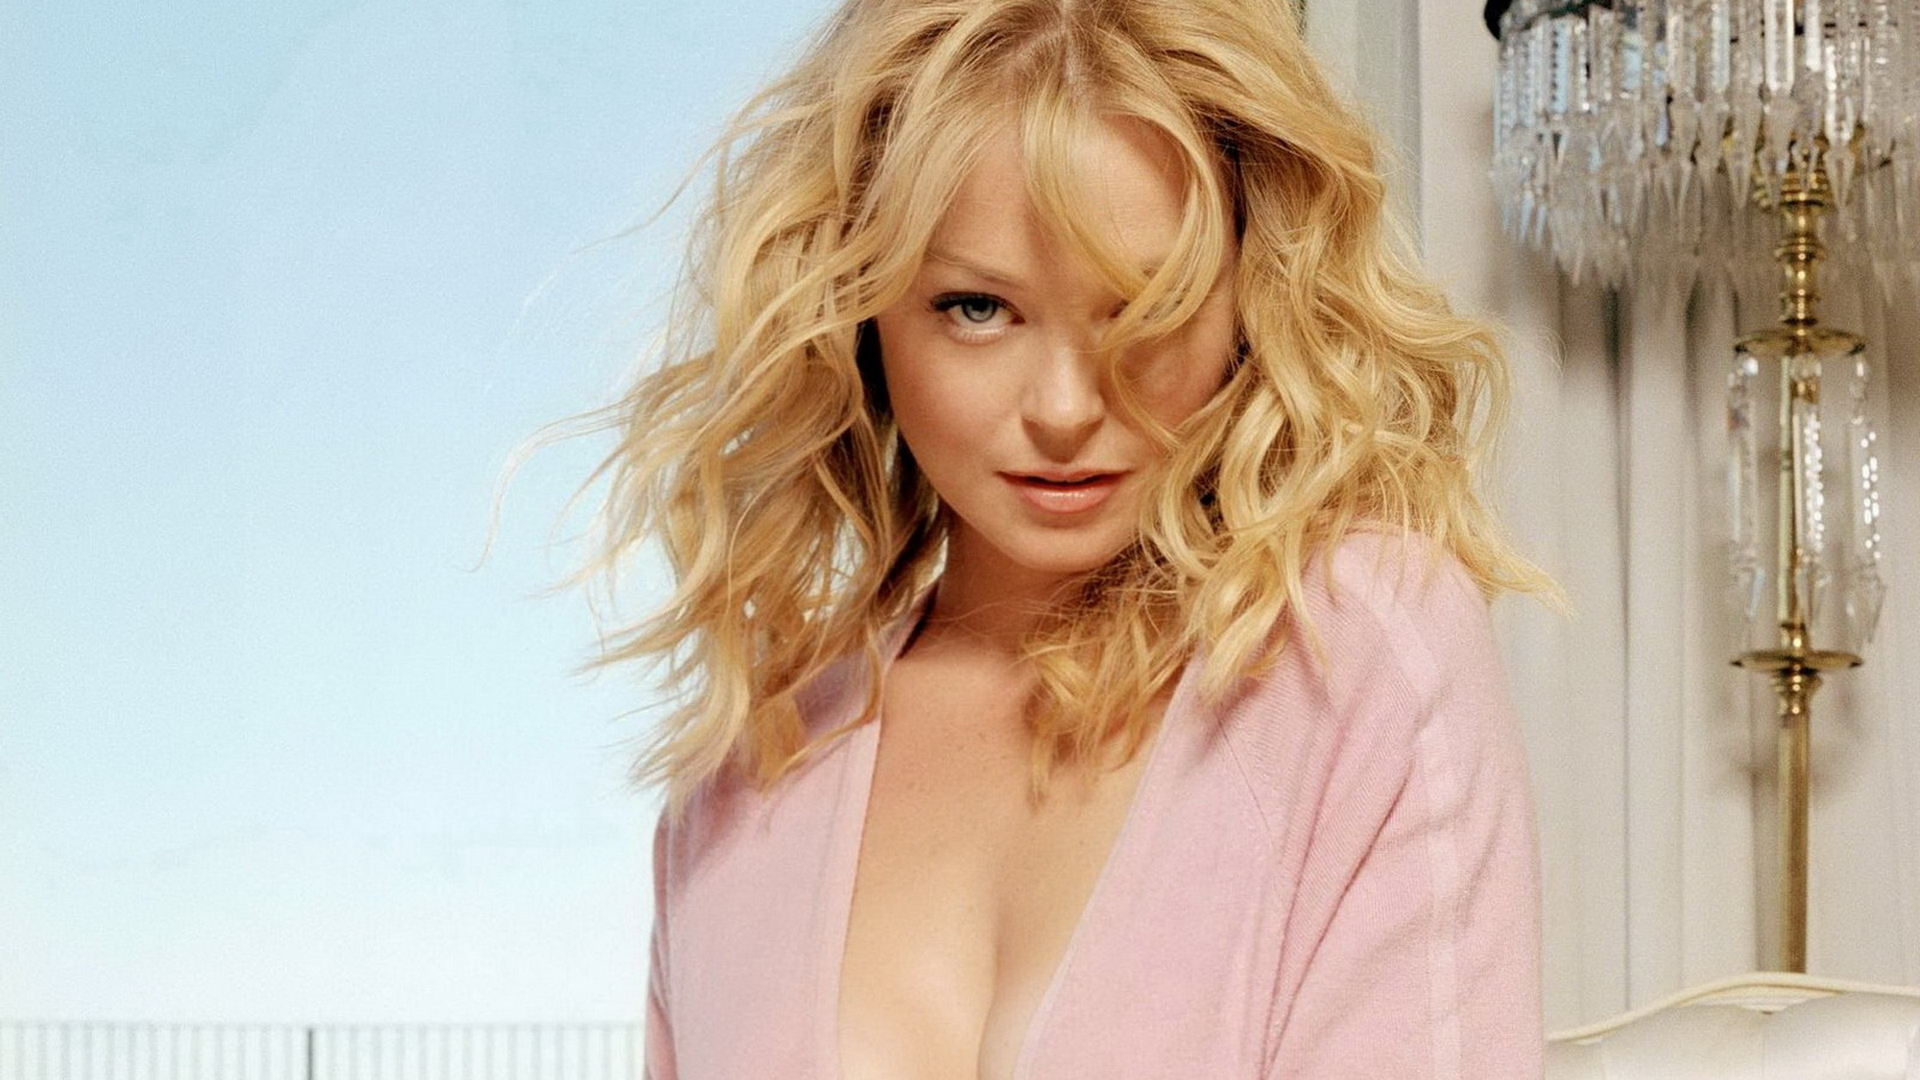 1920x1080 - Charlotte Ross Wallpapers 10